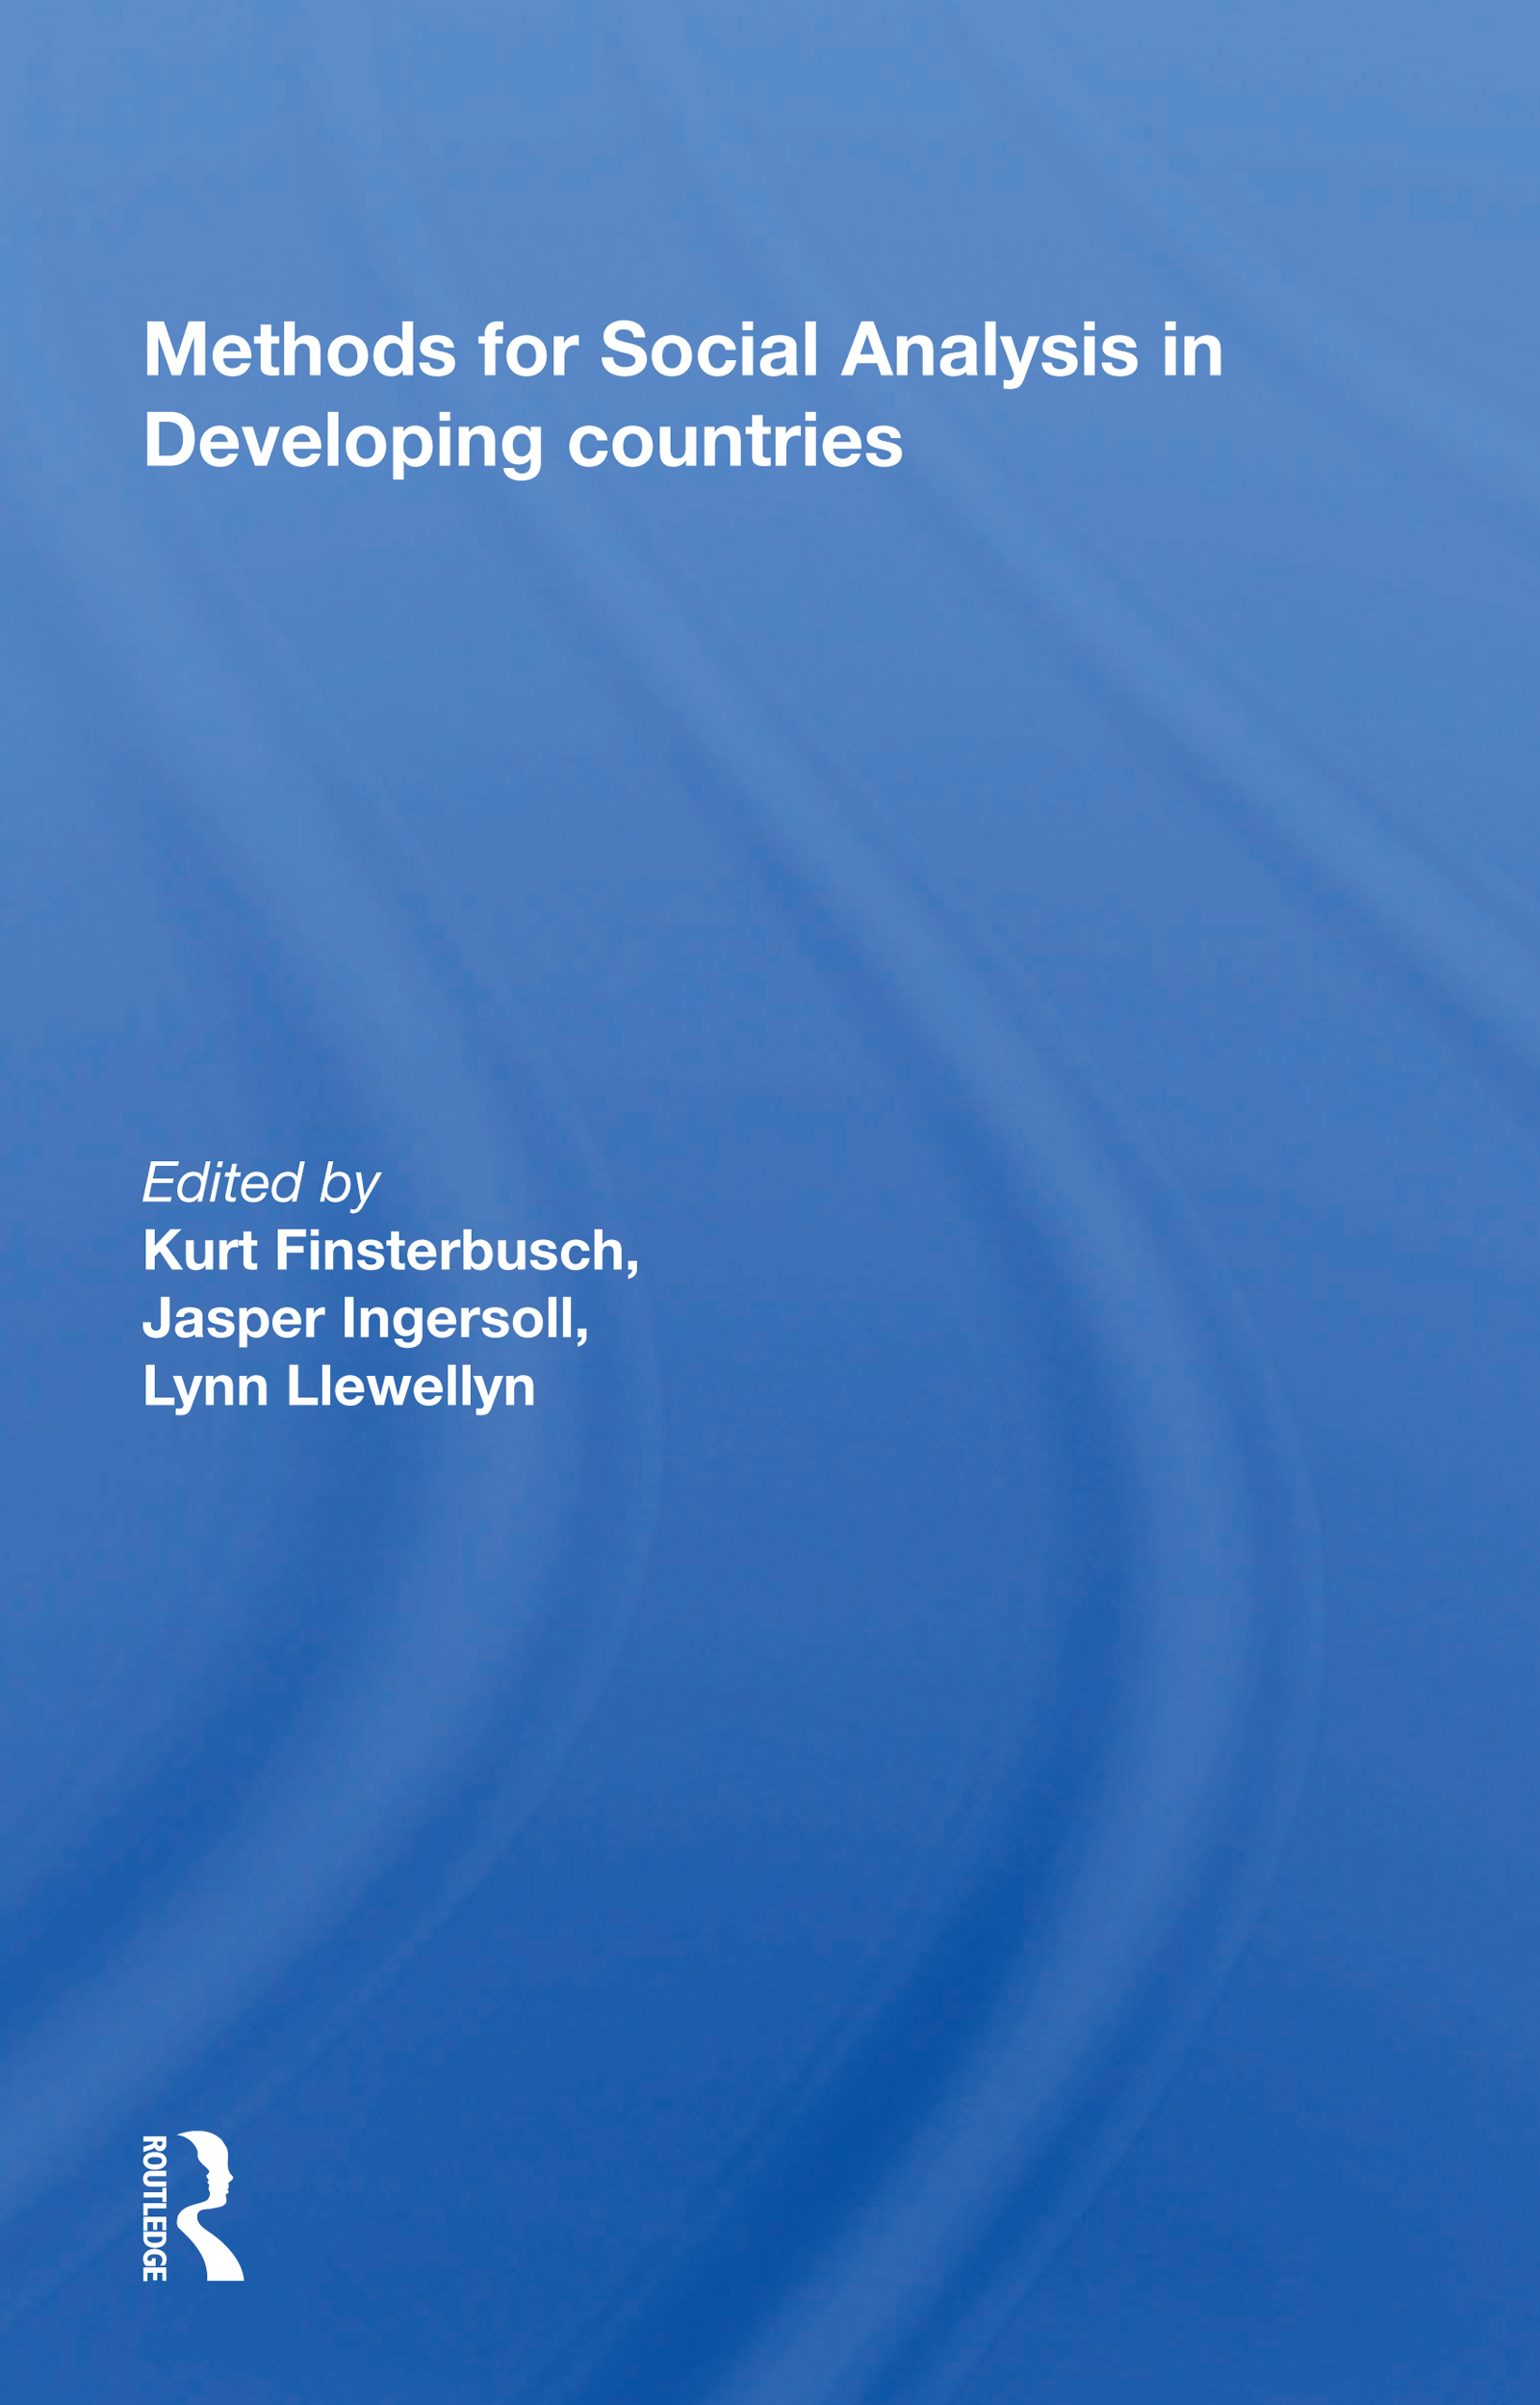 Methods for Social Analysis in Developing Countries